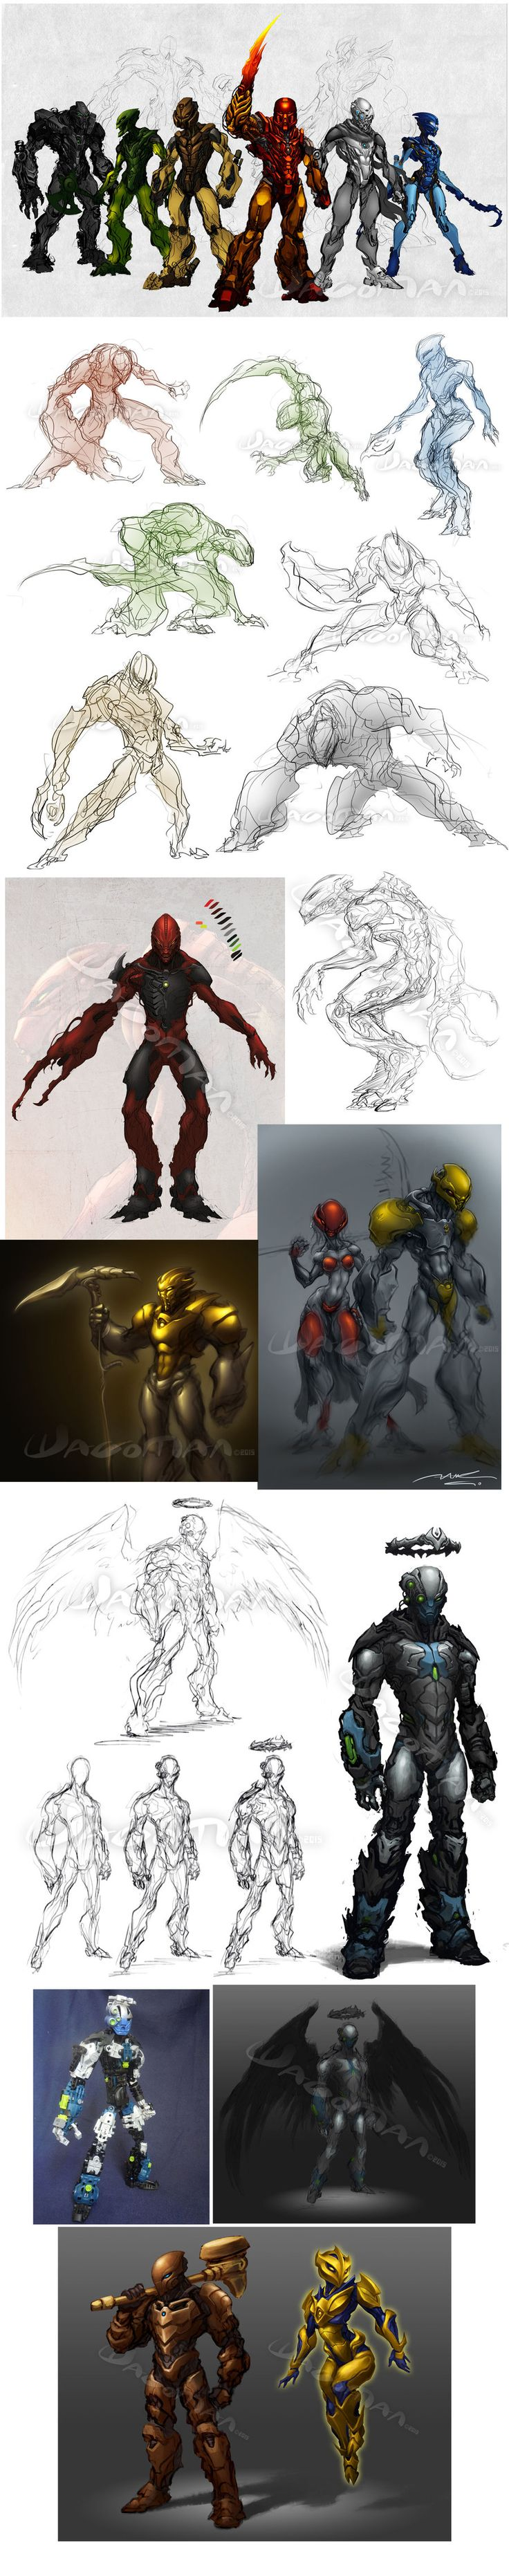 WIPs + Dumps by The-HT-Wacom-Man on DeviantArt